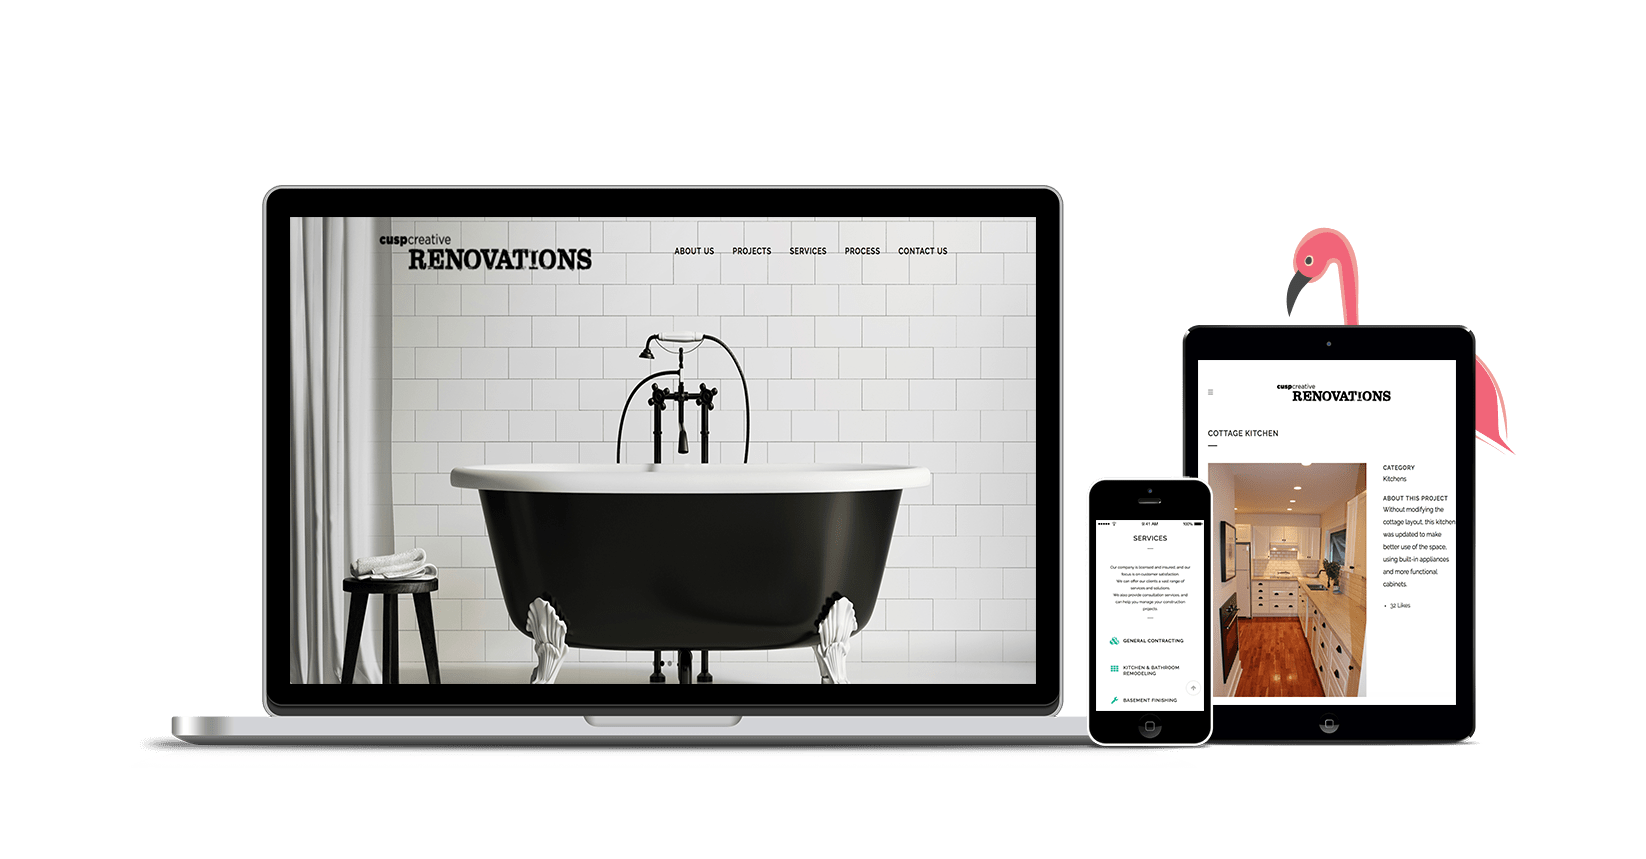 Support Side By Digital Marketing Web Design Kitchener Bathroom Sink Plumbing Diagram Know How Pinterest Pin It On